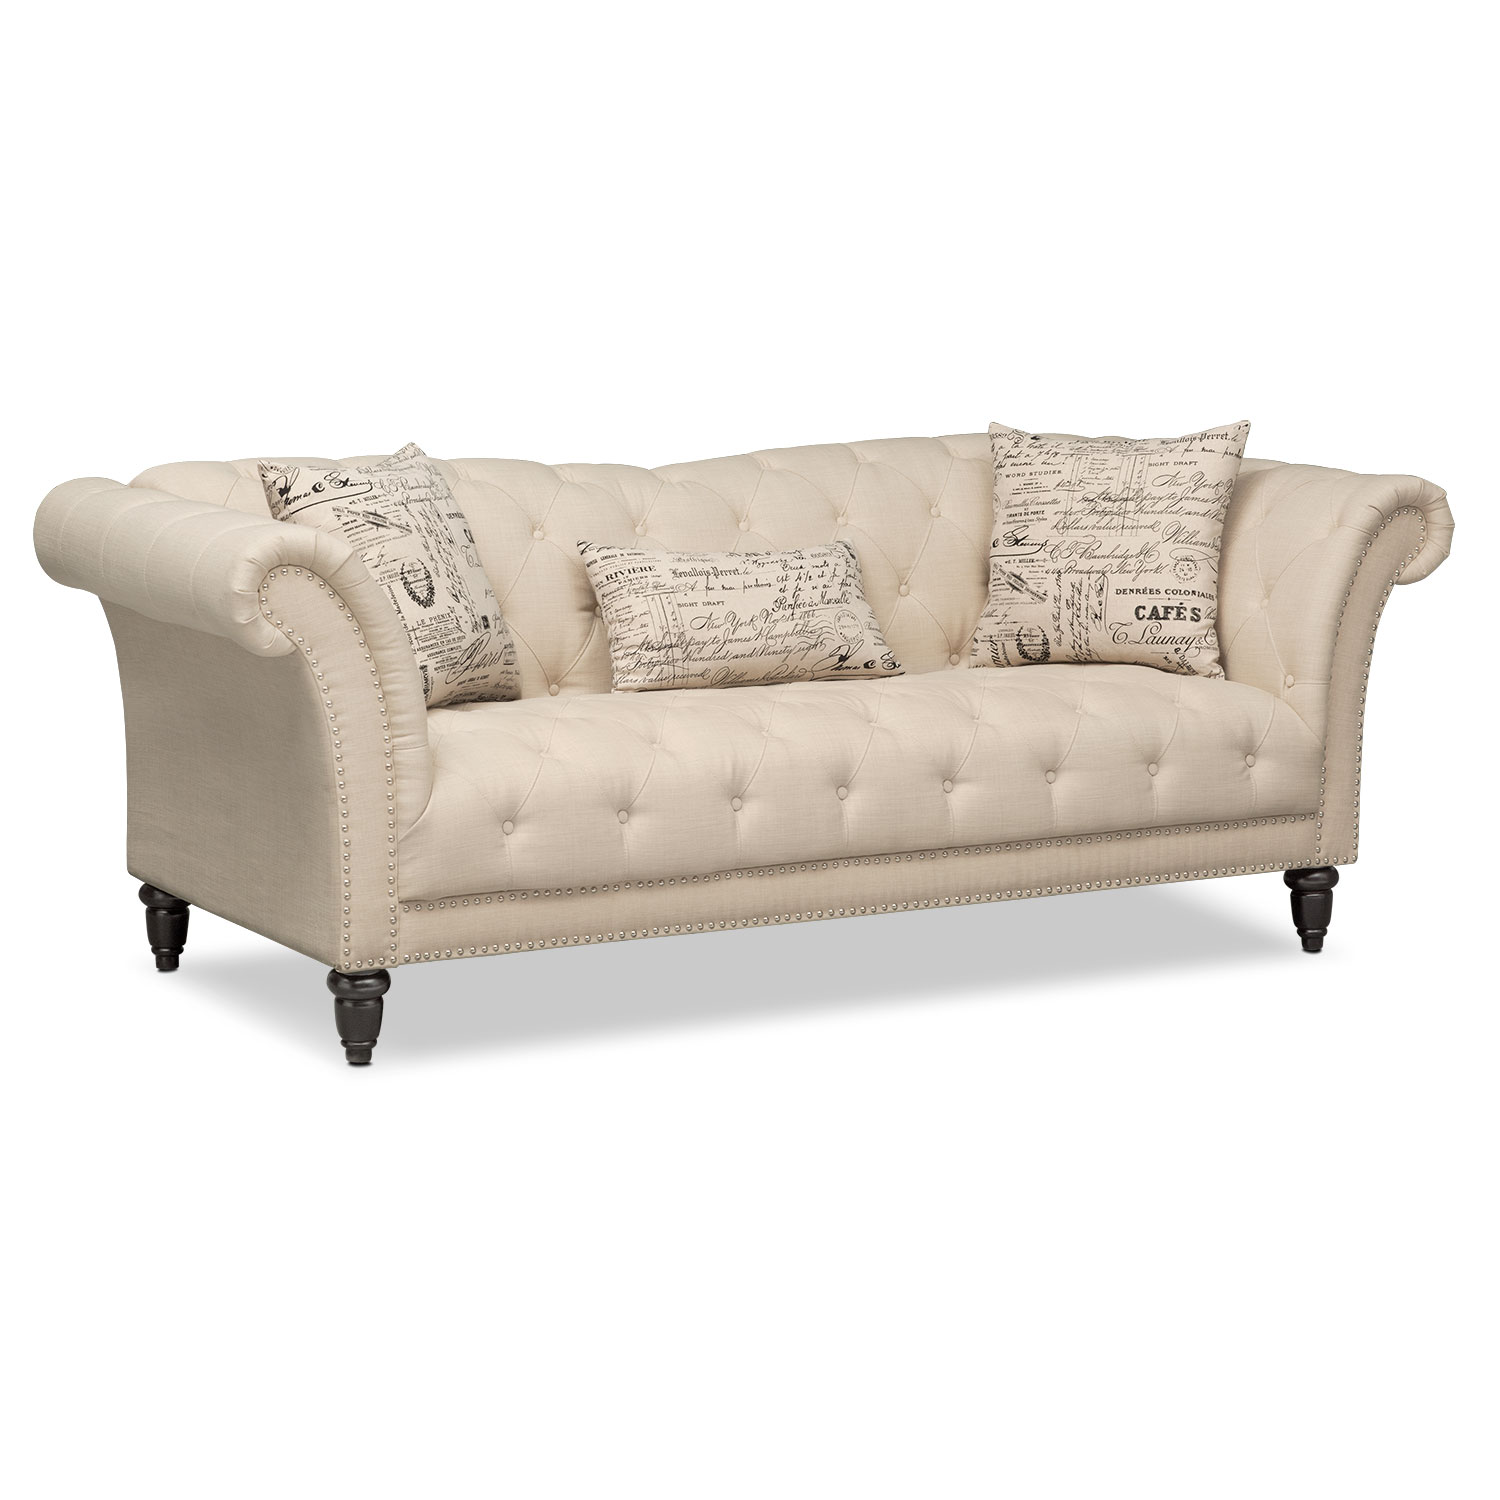 Marisol Sofa - Beige : American Signature Furniture